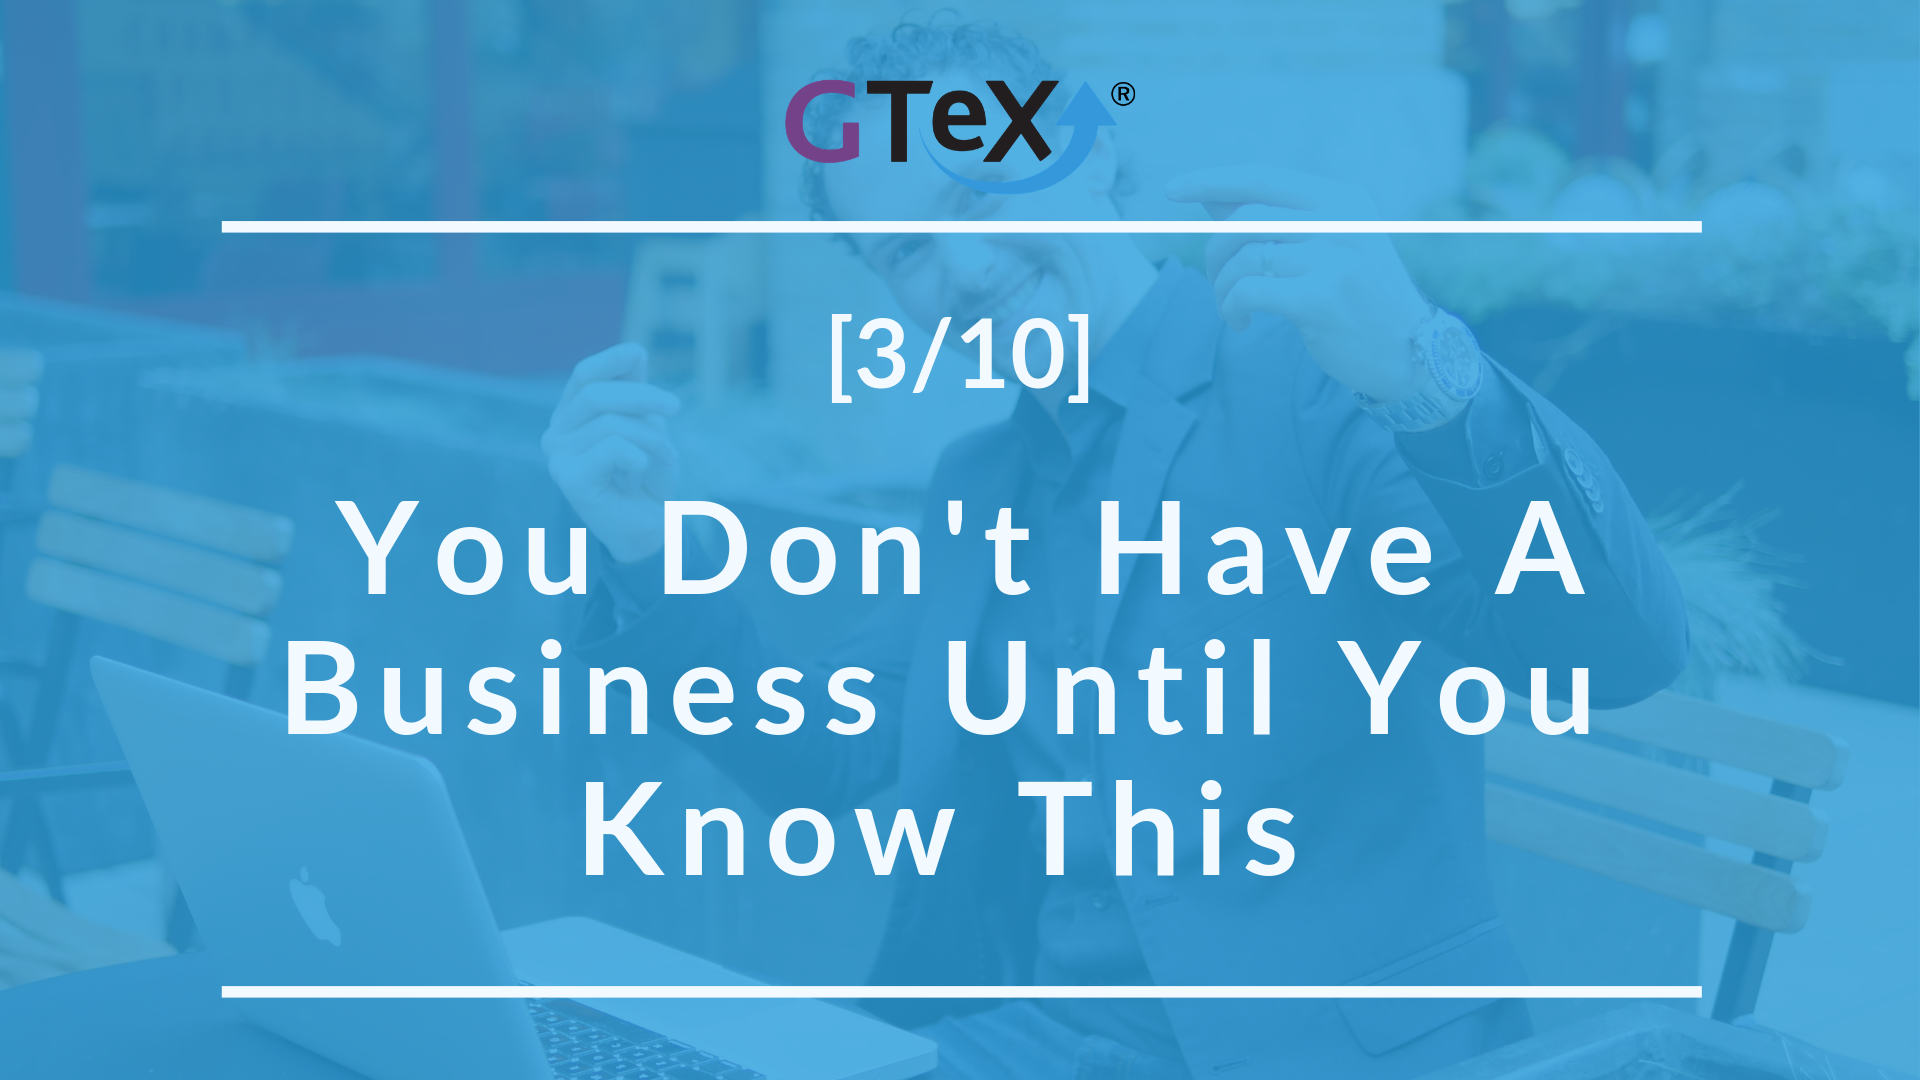 [3/10] You don't have a business until you know this